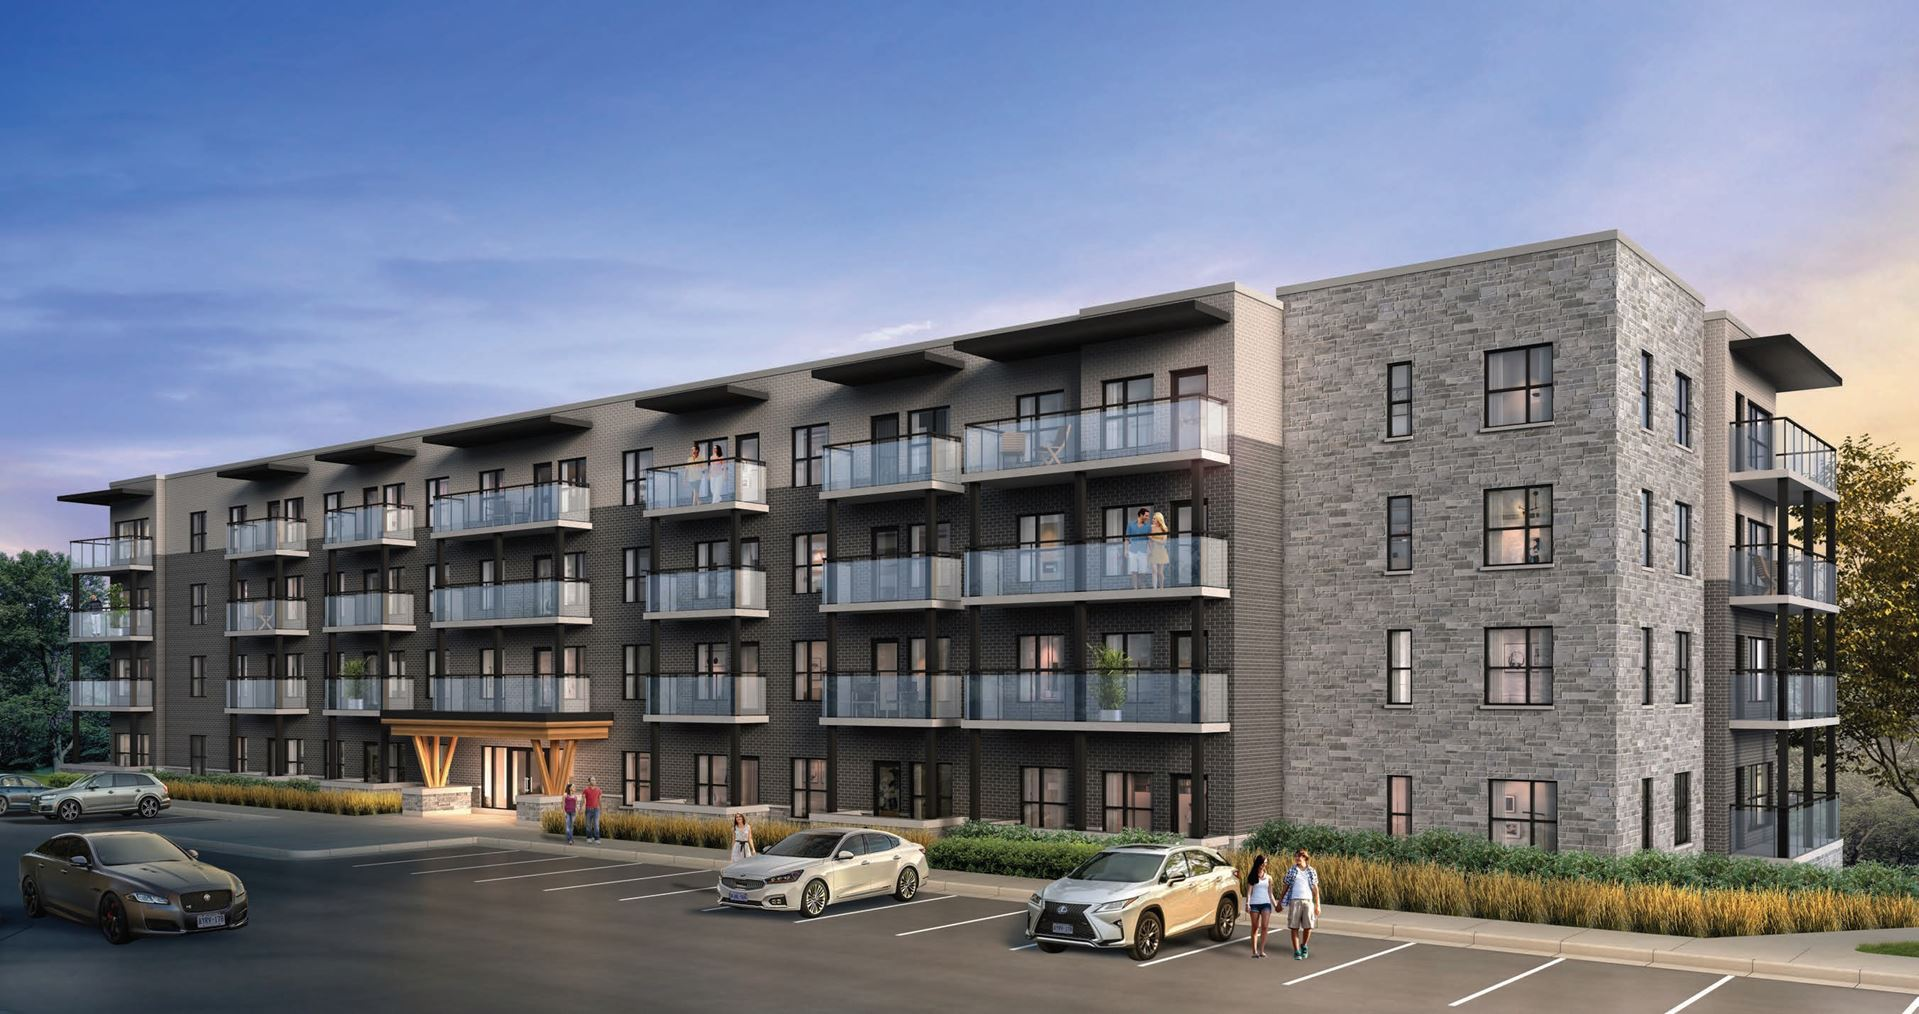 Exterior rendering of Lackner Ridge Condos in the evening.